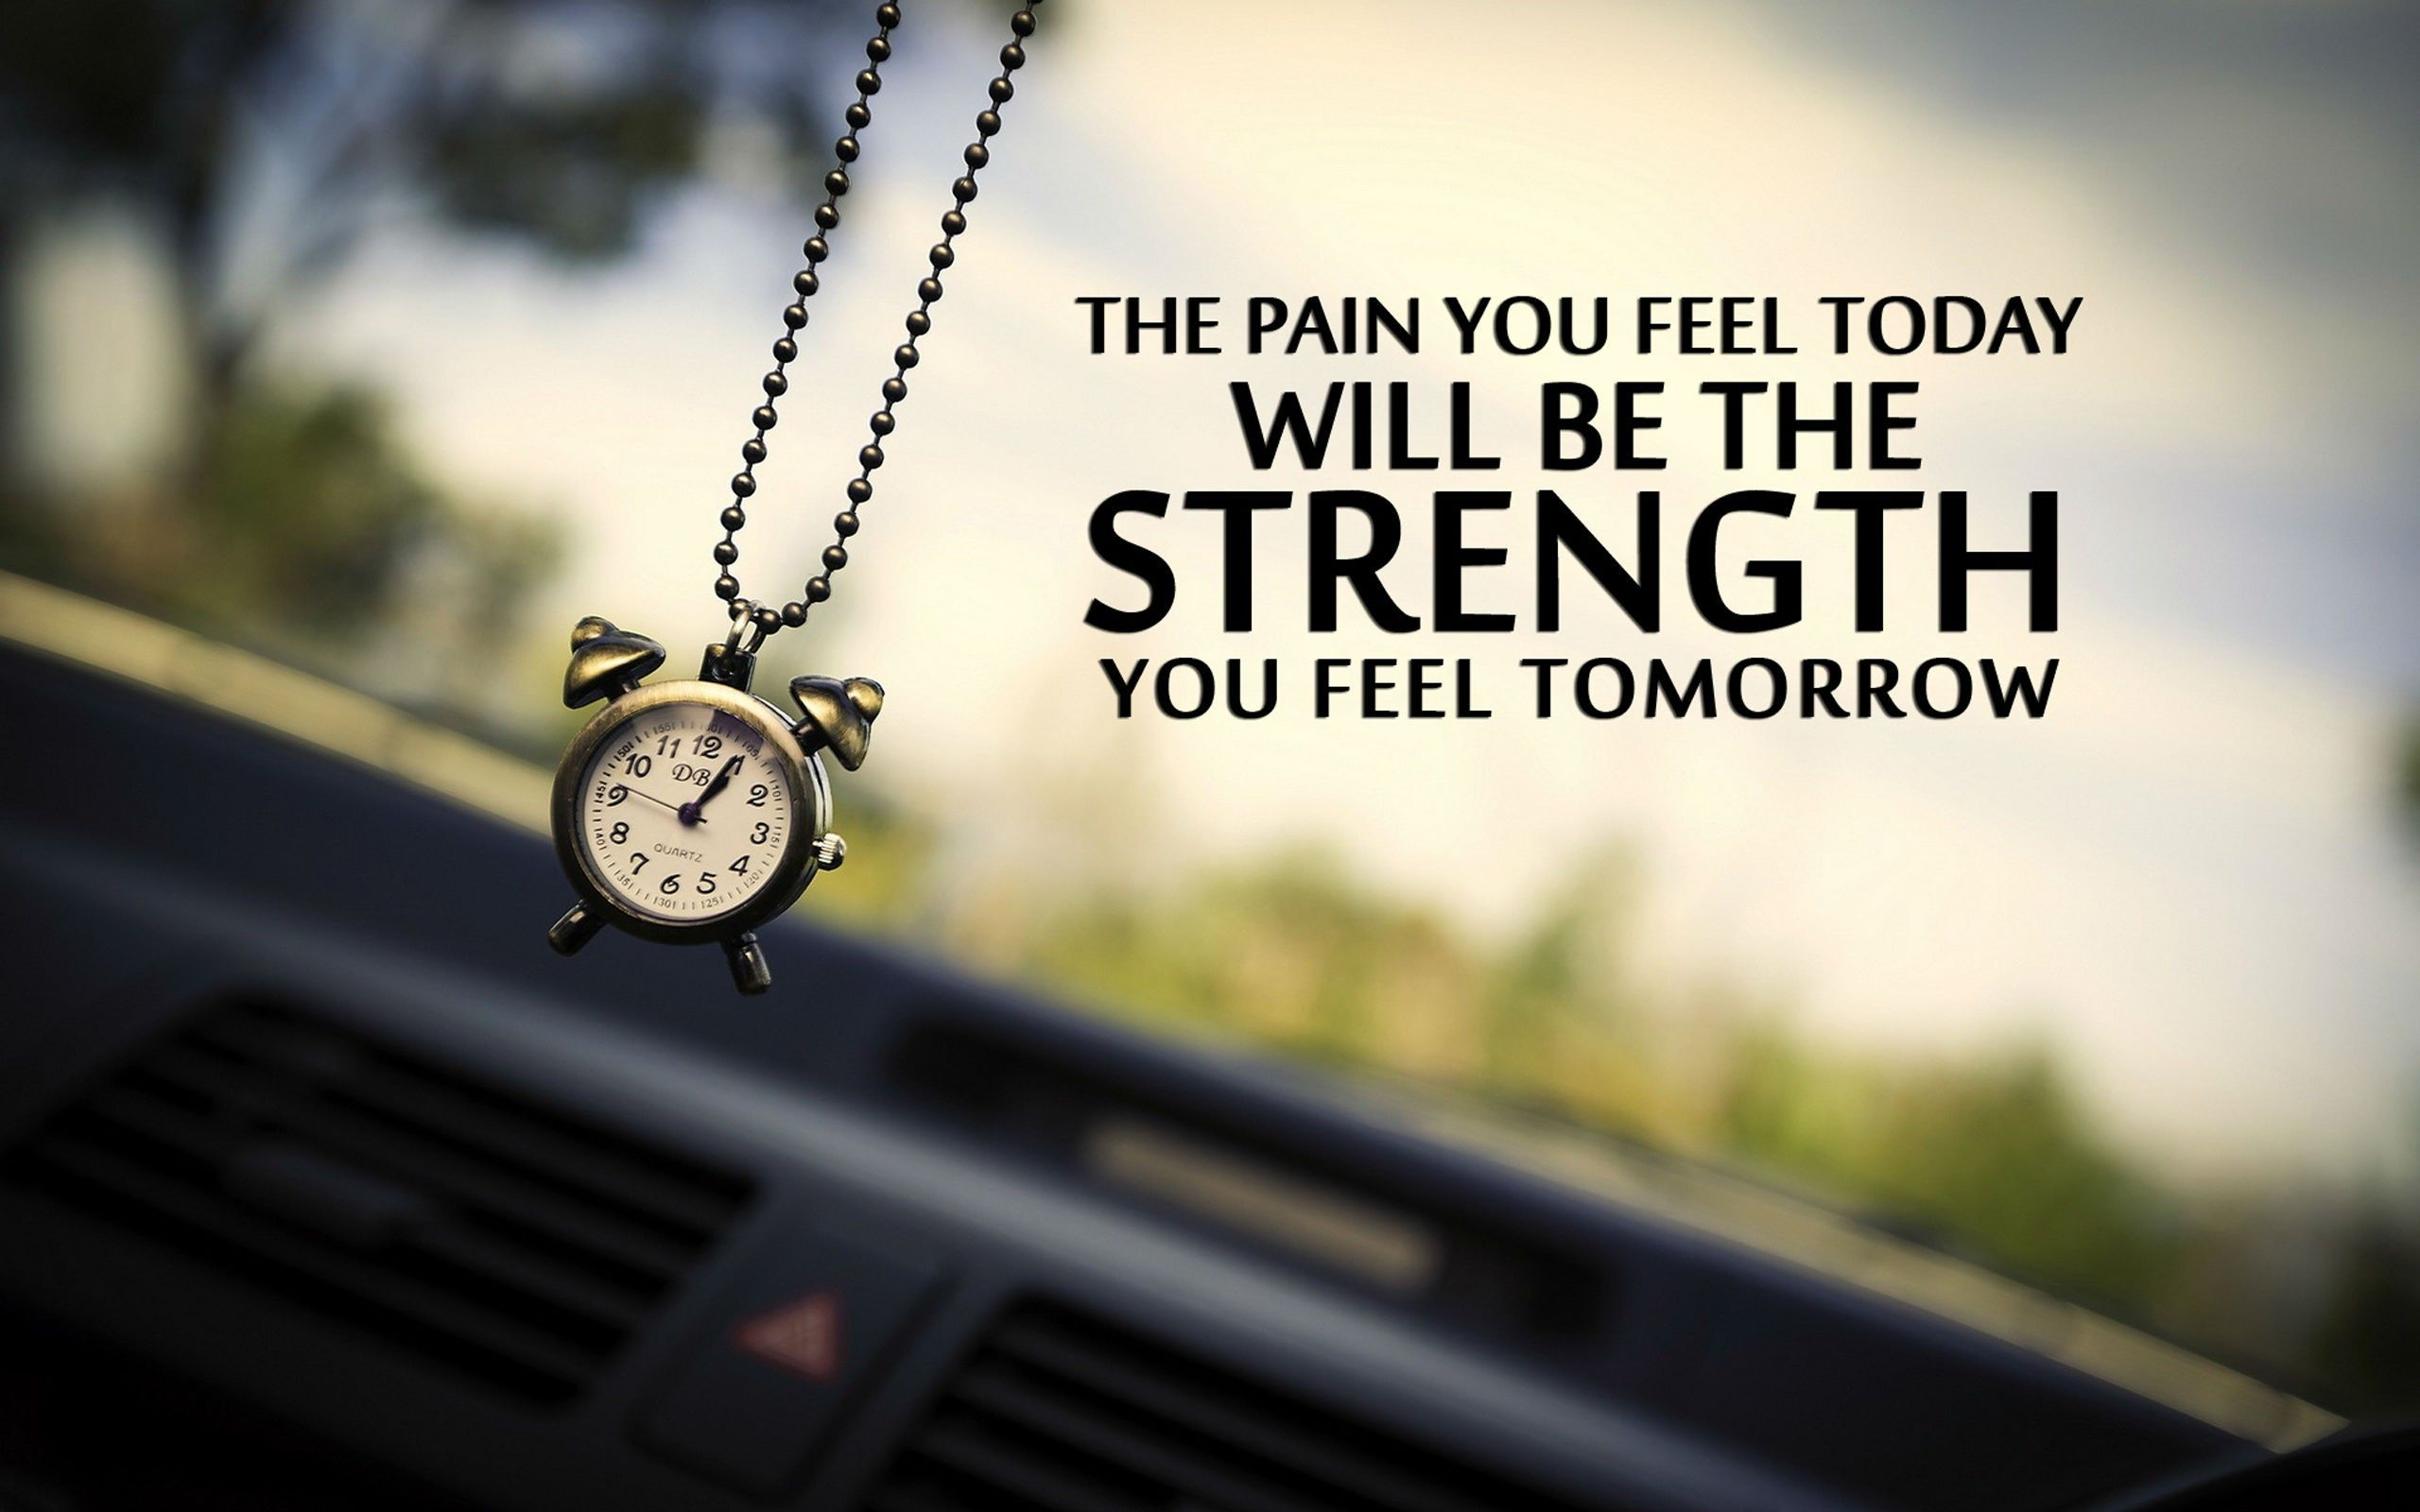 Fridaymotivation Fridaythoughts Fridayquote Quoteoftheday Positivev Motivational Quotes Wallpaper Desktop Wallpaper Quotes Inspirational Quotes Wallpapers